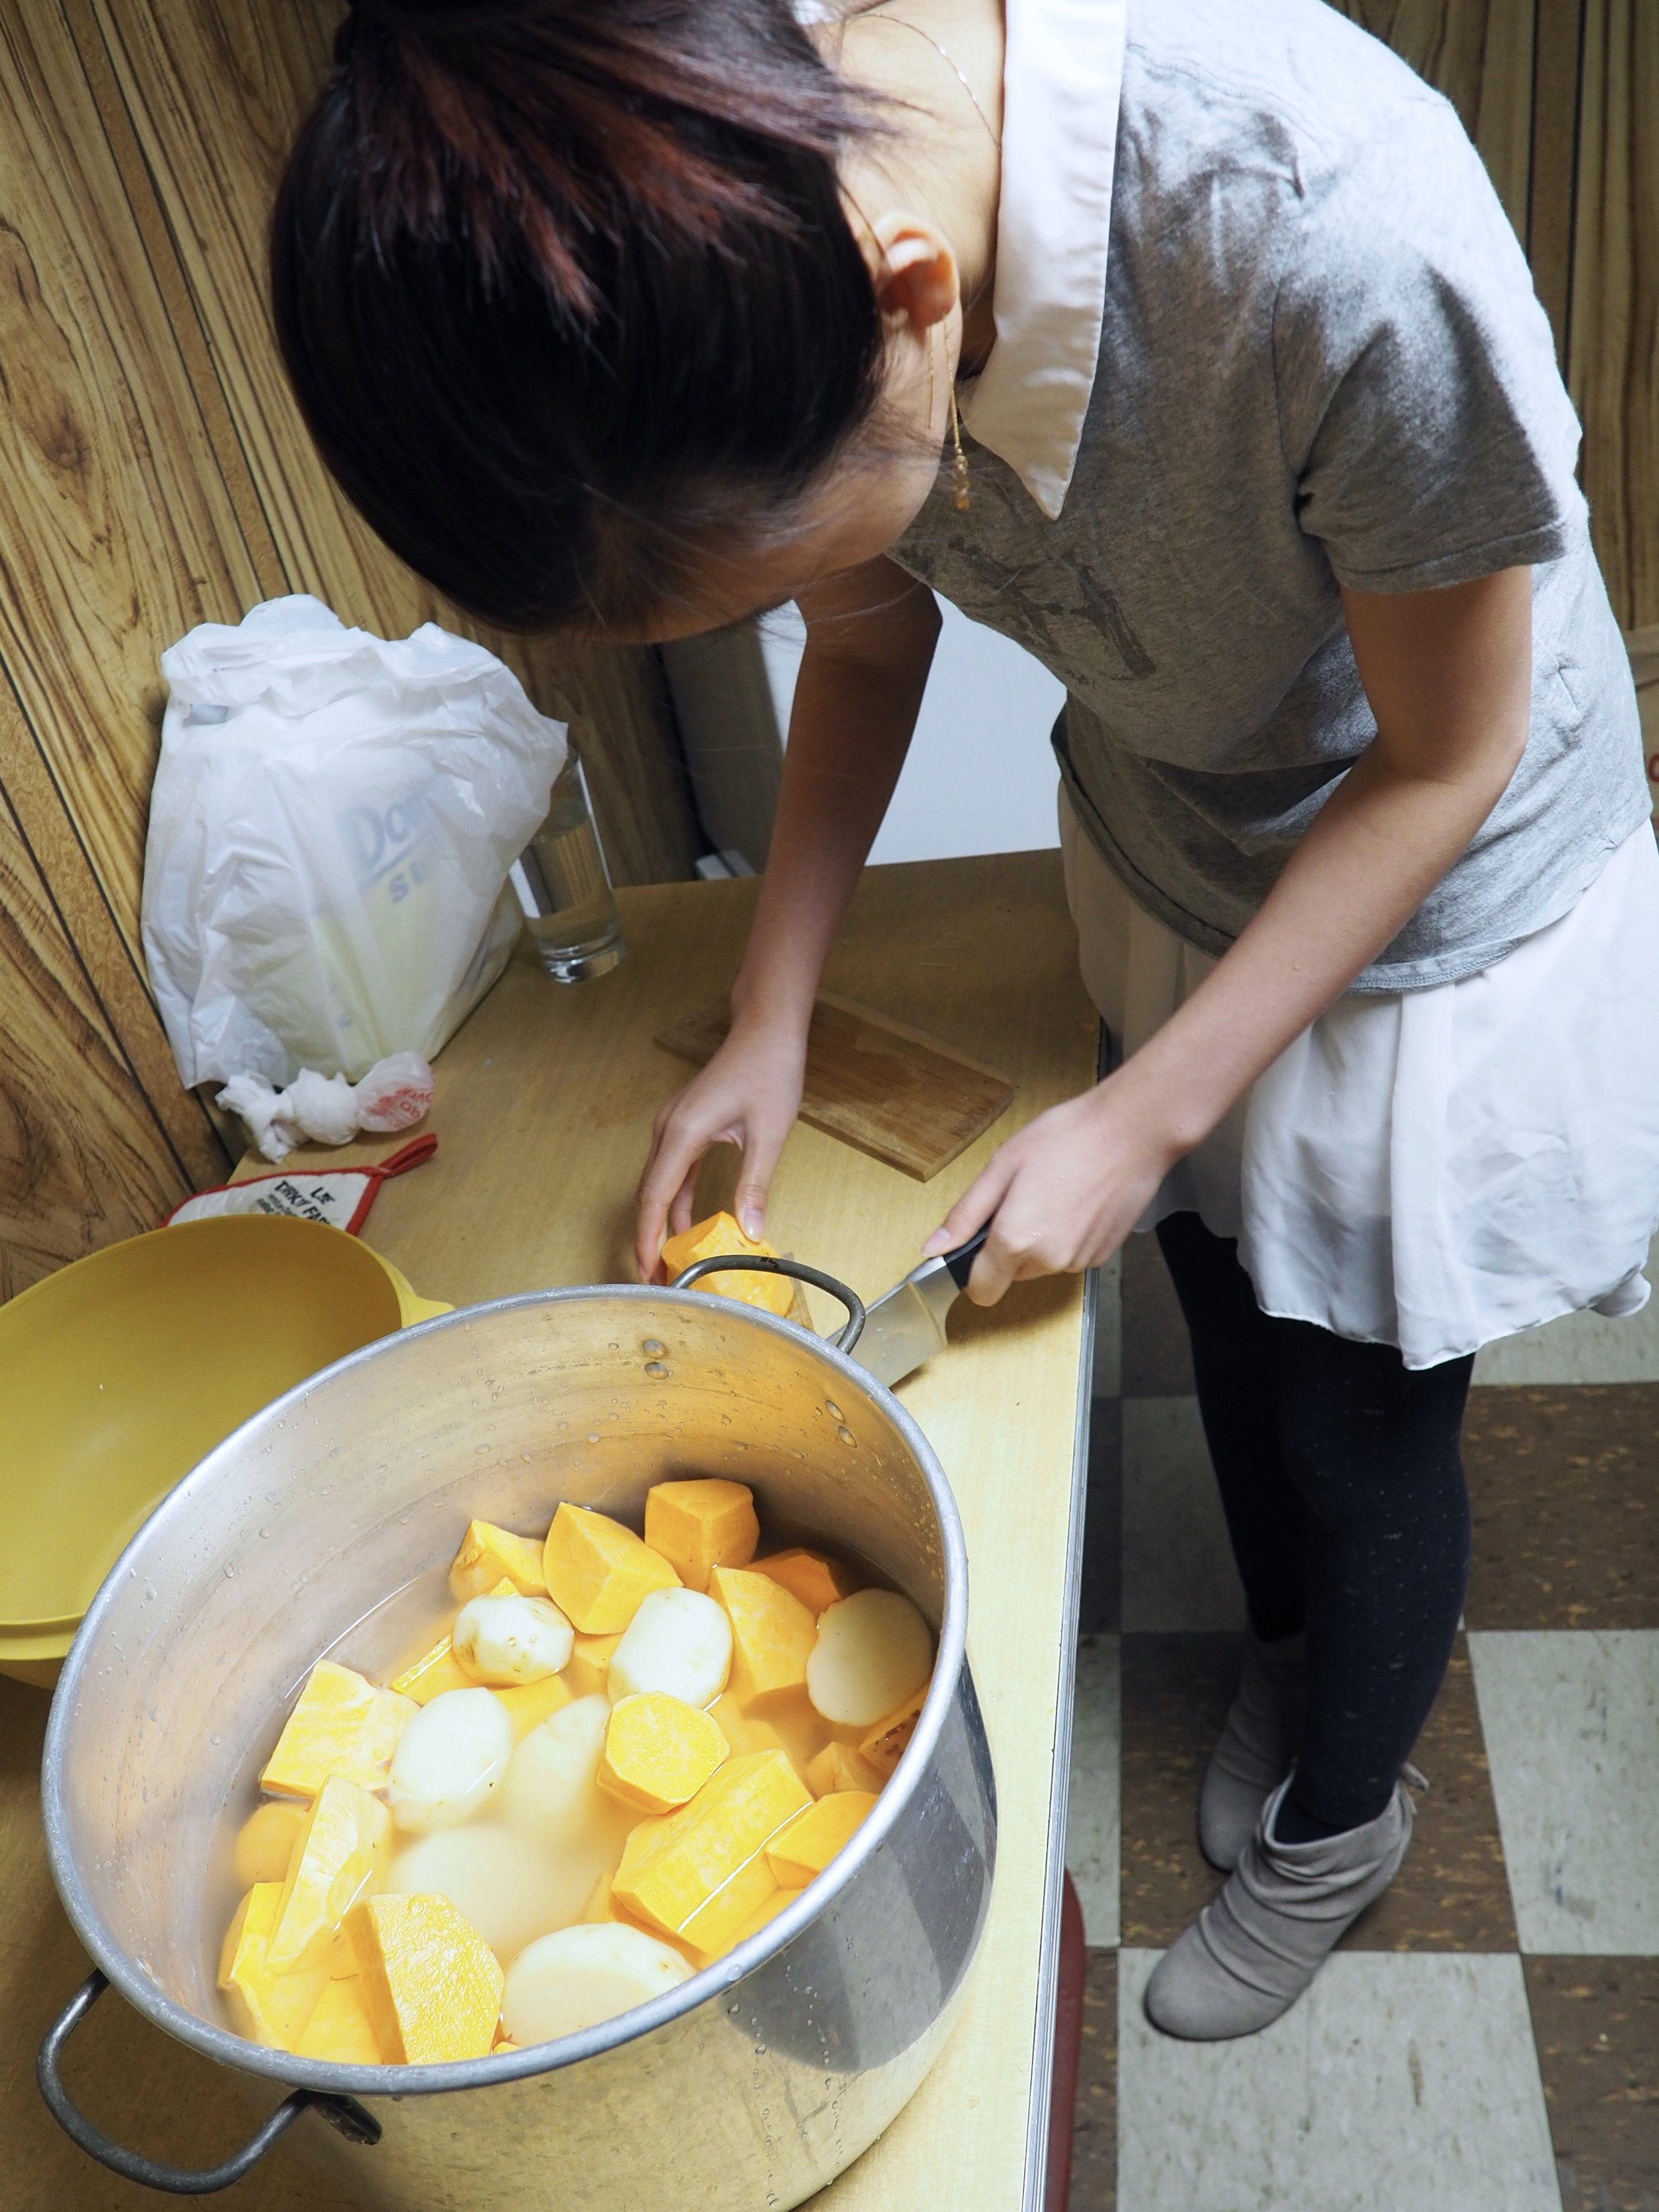 Tiffany at work on the potatoes